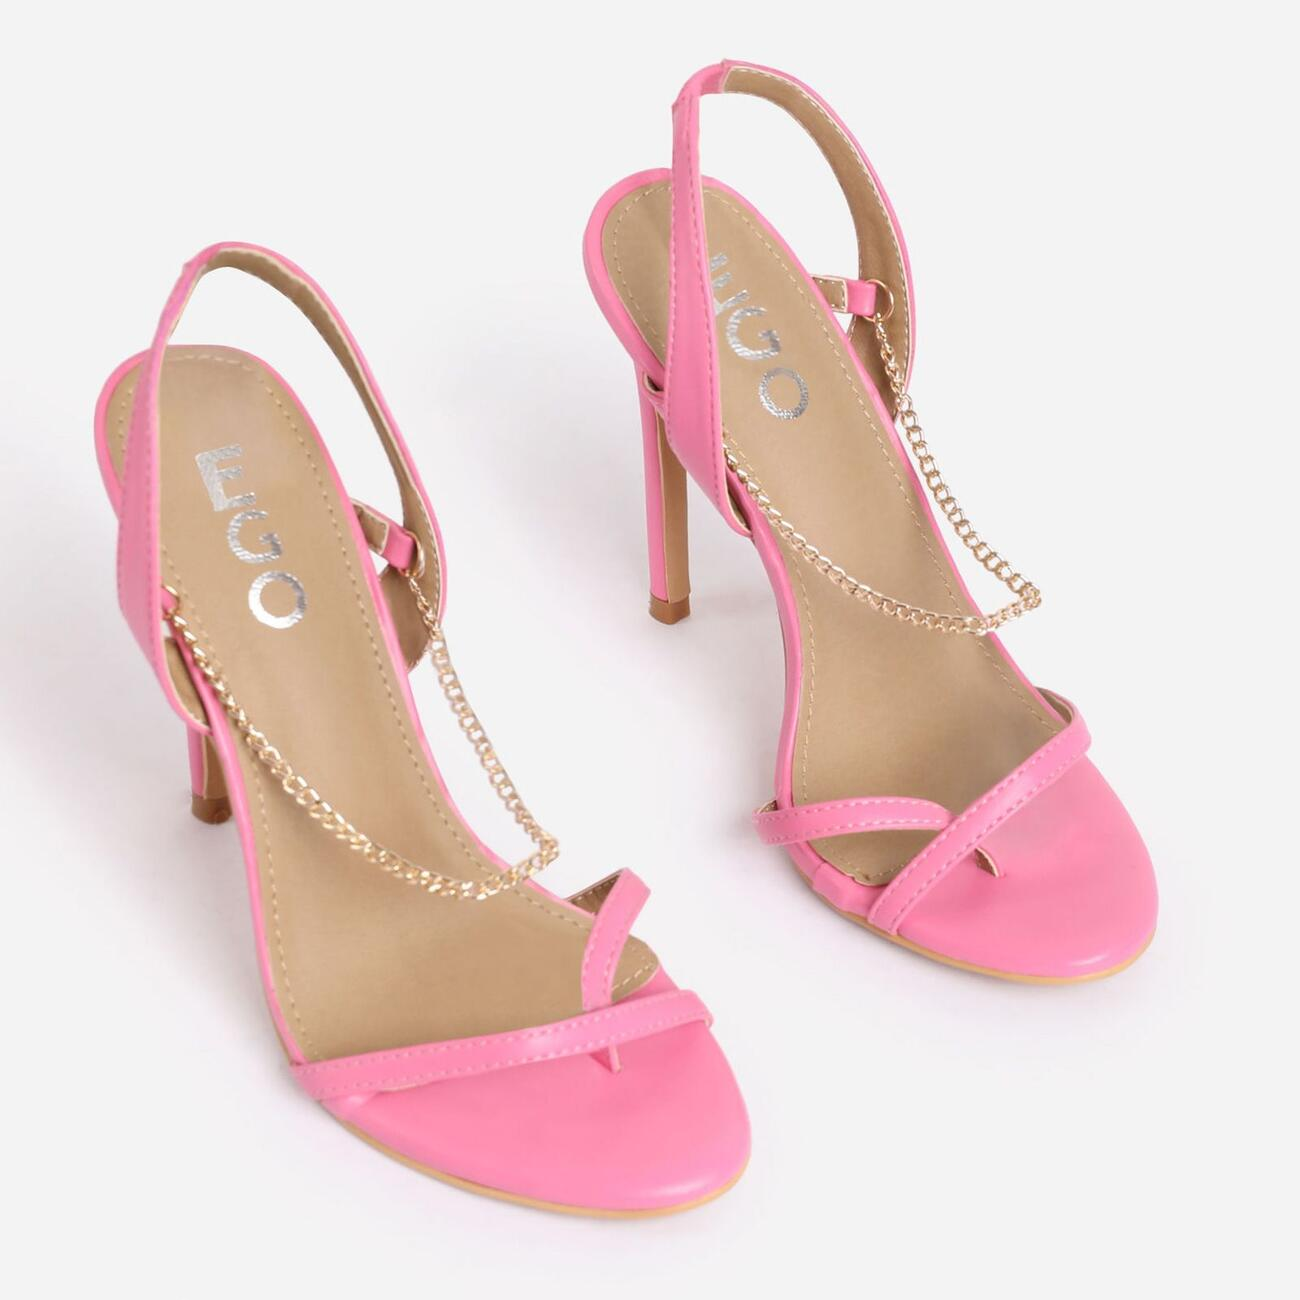 Peachy Chain Detail Sling Back Heel In Pink Faux Leather Image 2